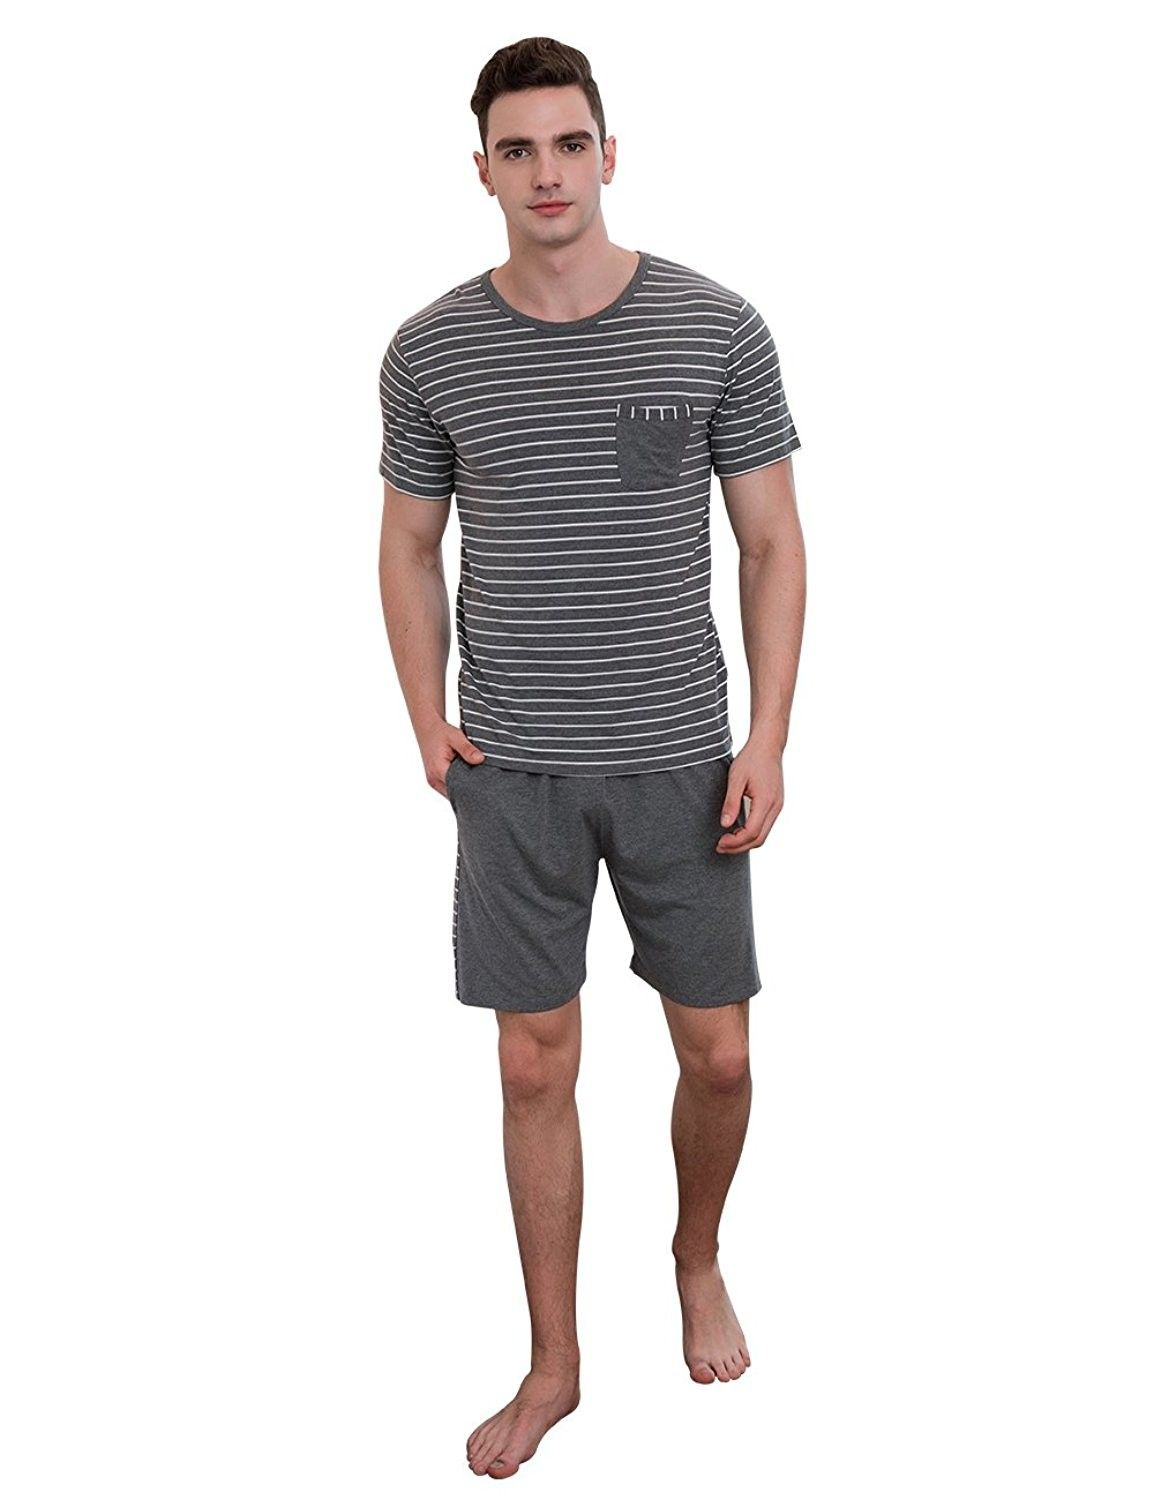 Striped Short-Sleeve Top With Shorts